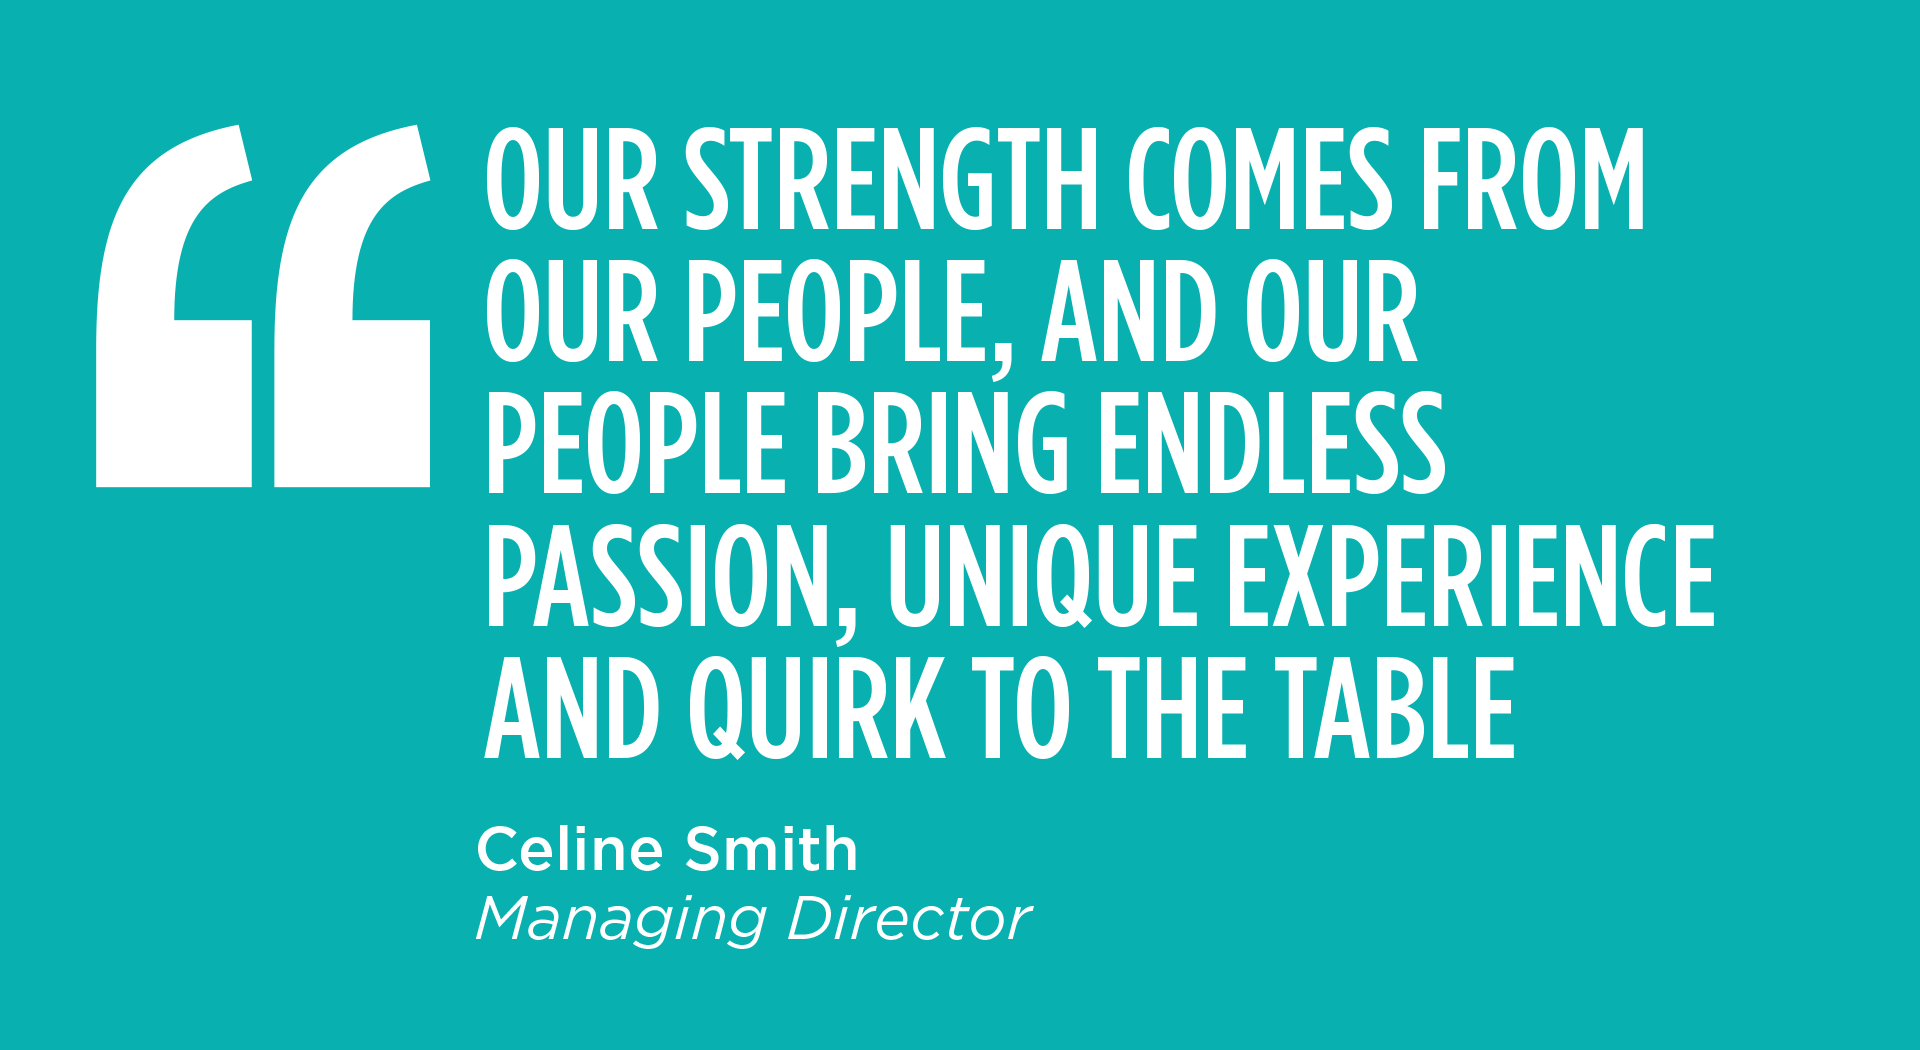 OUR STRENGTH COMES FROM OUR PEOPLE, AND OUR PEOPLE BRING ENDLESS PASSION, UNIQUE EXPERIENCE AND QUIRK TO THE TABLE - Celine Smith, Managing Director